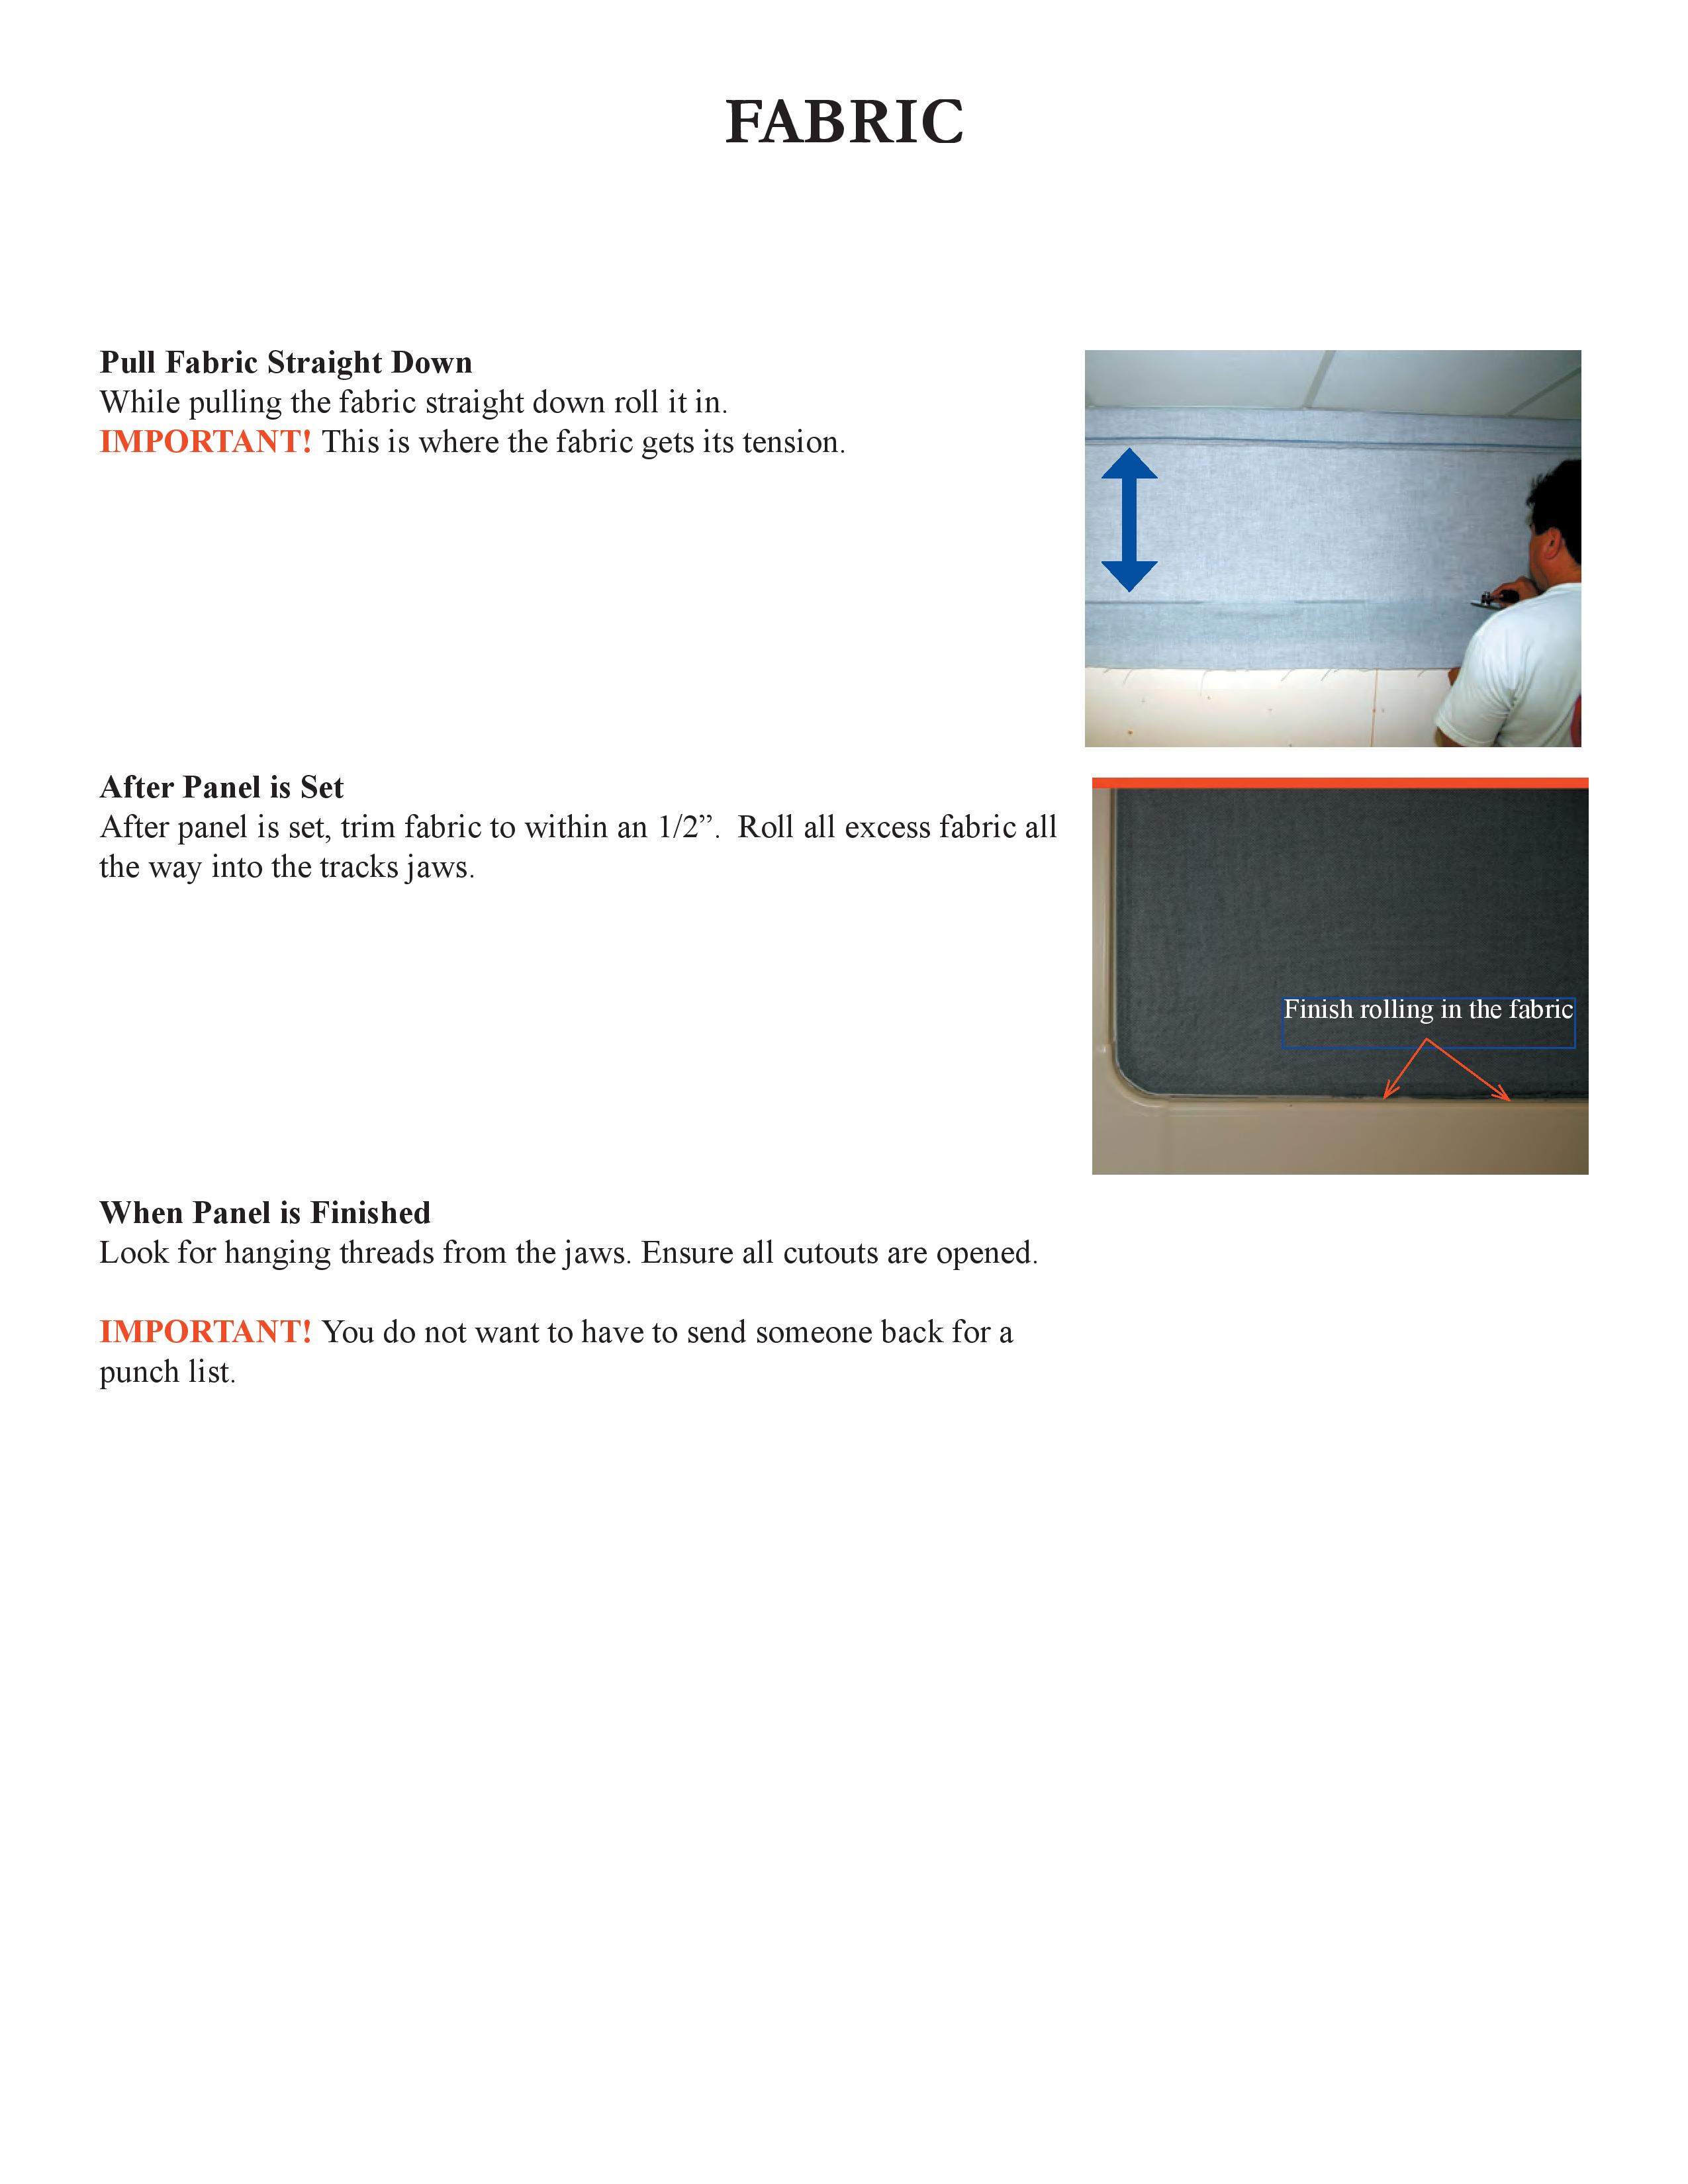 techwall-how-to-book-tech-wall-copy-page-020.jpg